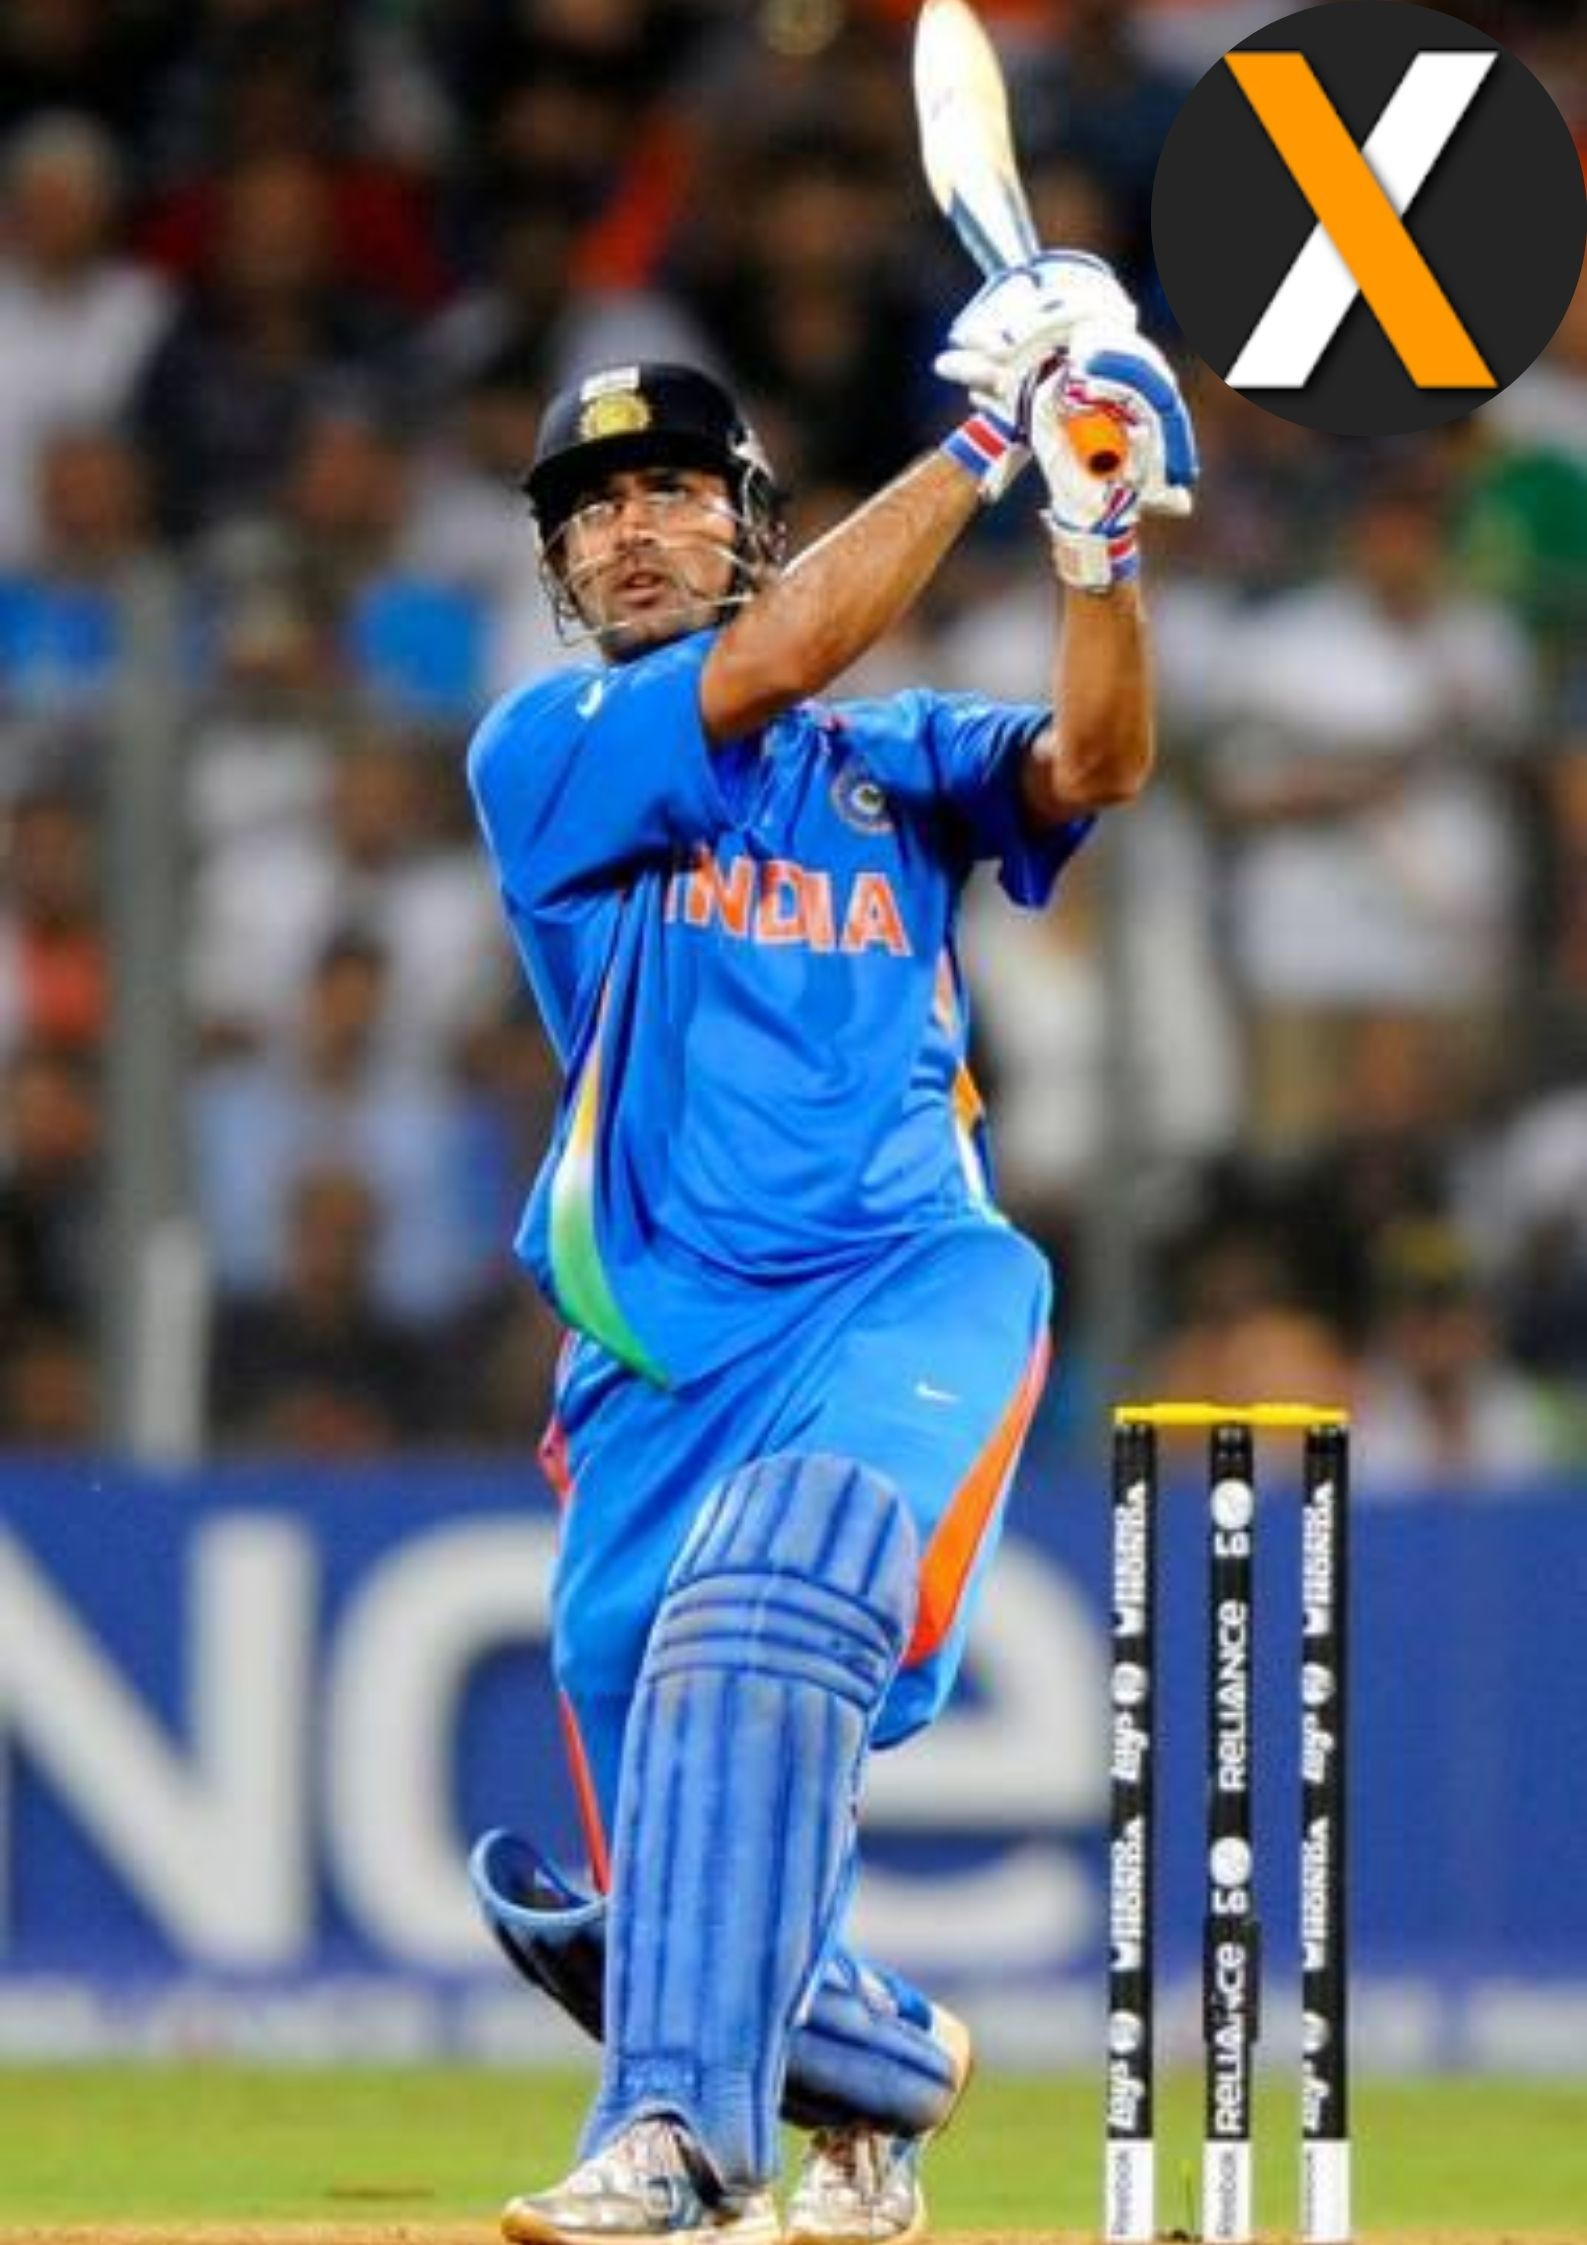 Mahendra Singh Dhoni In 2020 Ms Dhoni Wallpapers Dhoni Wallpapers Ms Dhoni Photos